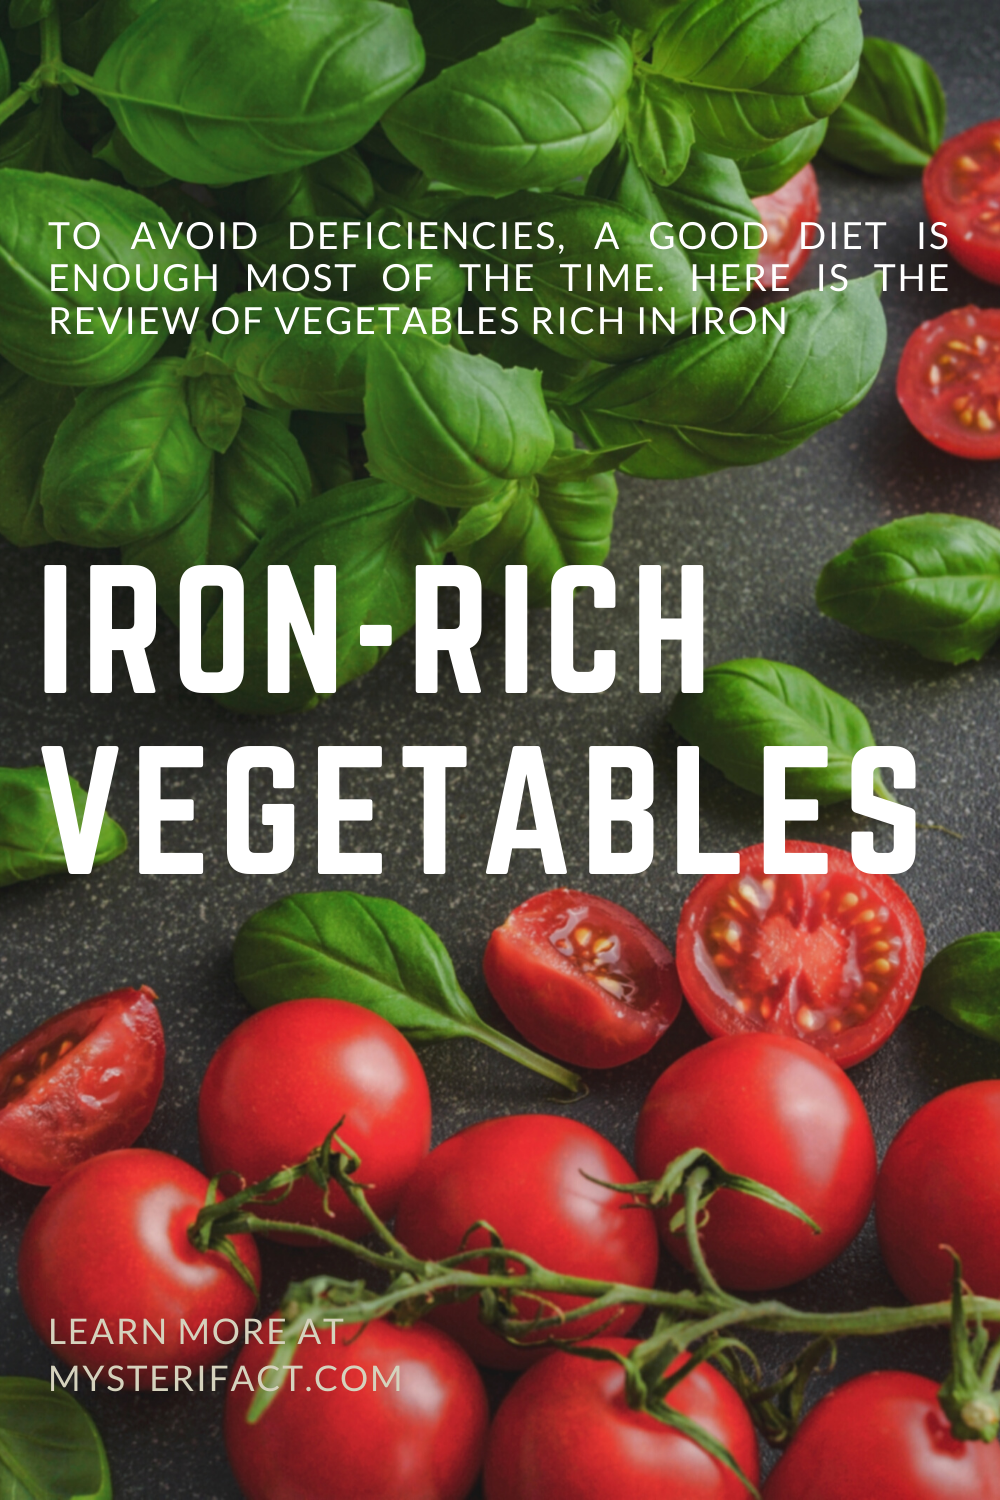 Ironrich vegetables Vegetables High in Iron in 2020